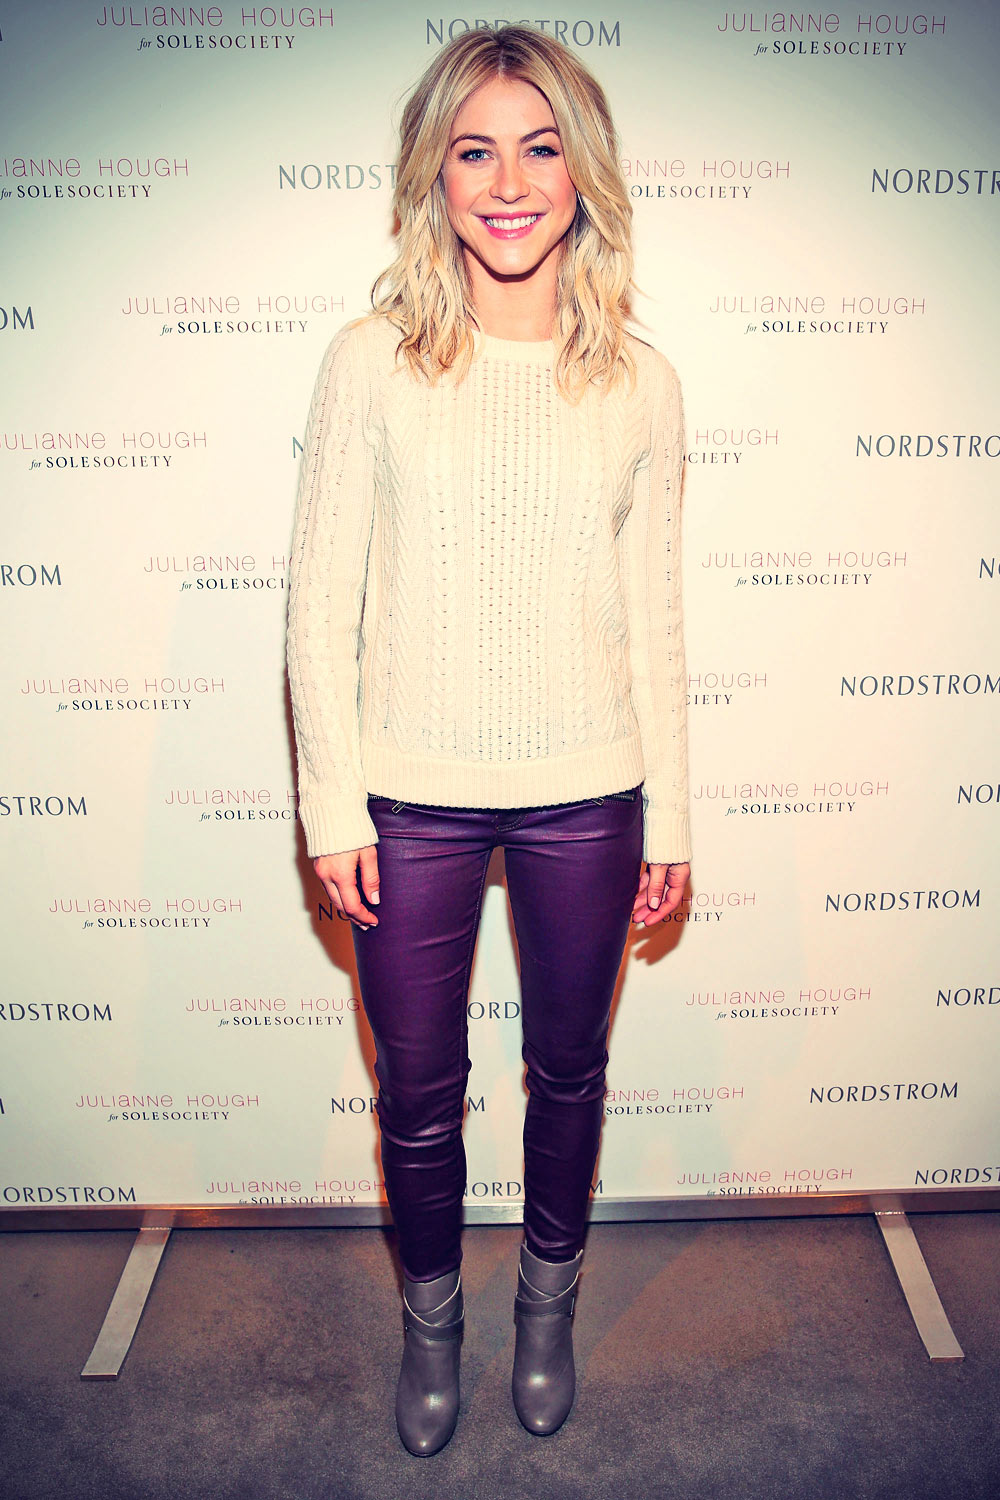 Julianne Hough presents the Julianne Hough for Sole Society Collection